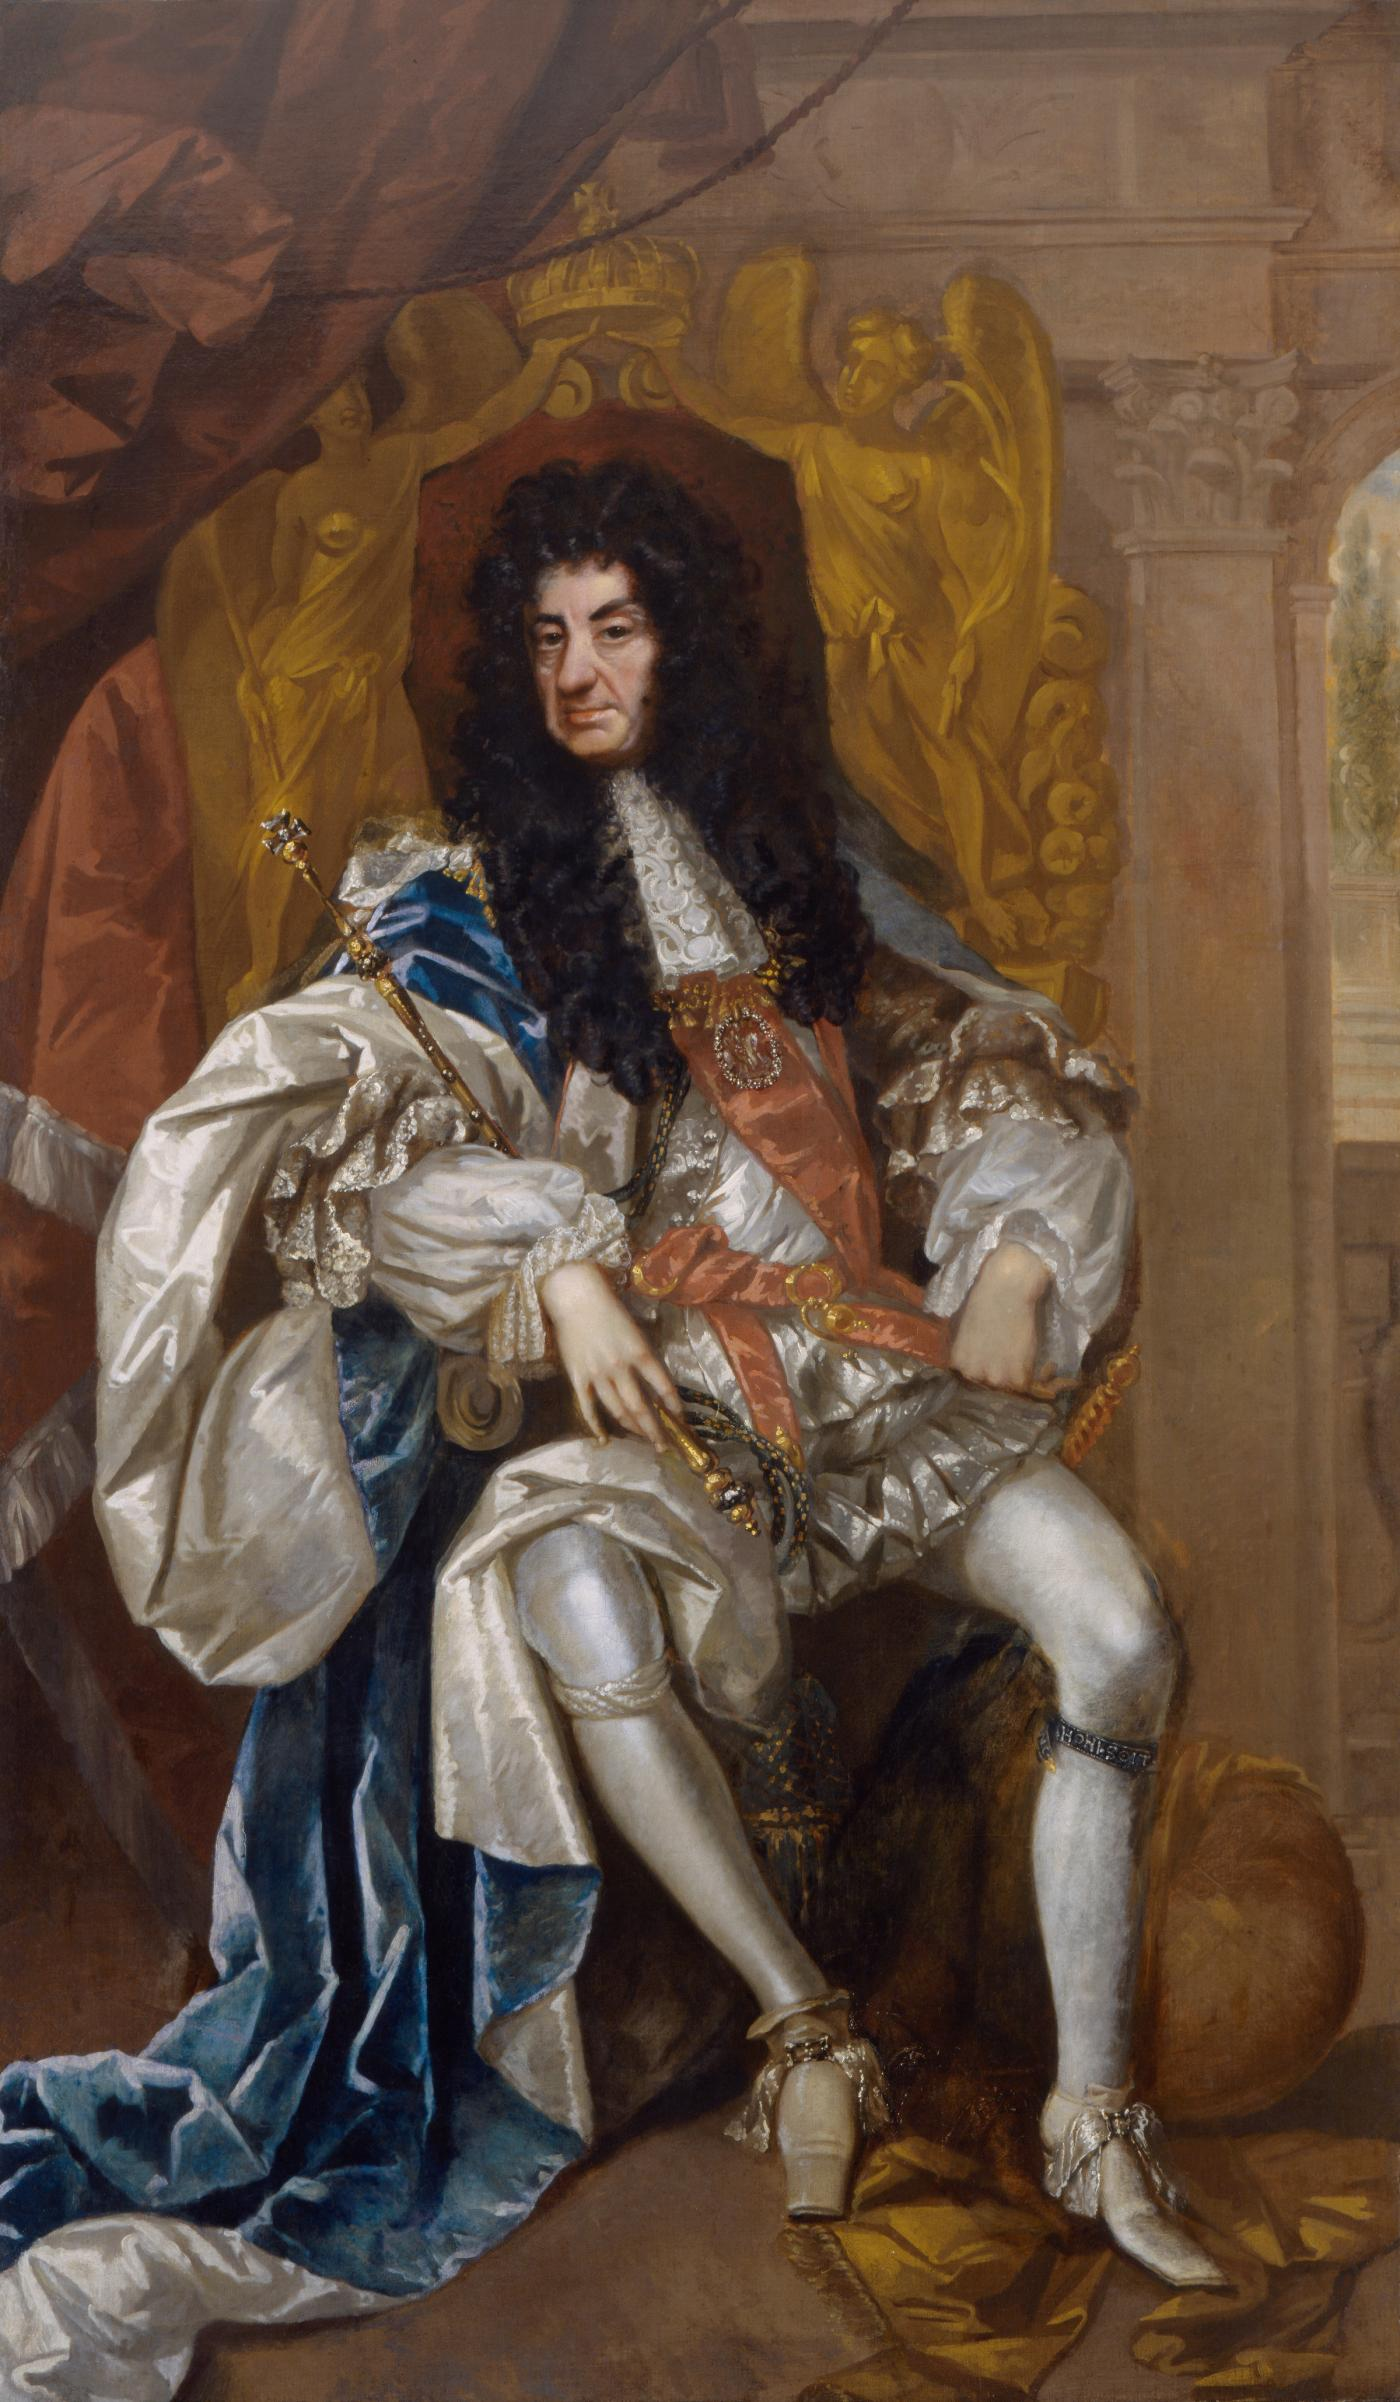 An image showing 'Charles II, attributed to Thomas Hawker, about 1680'